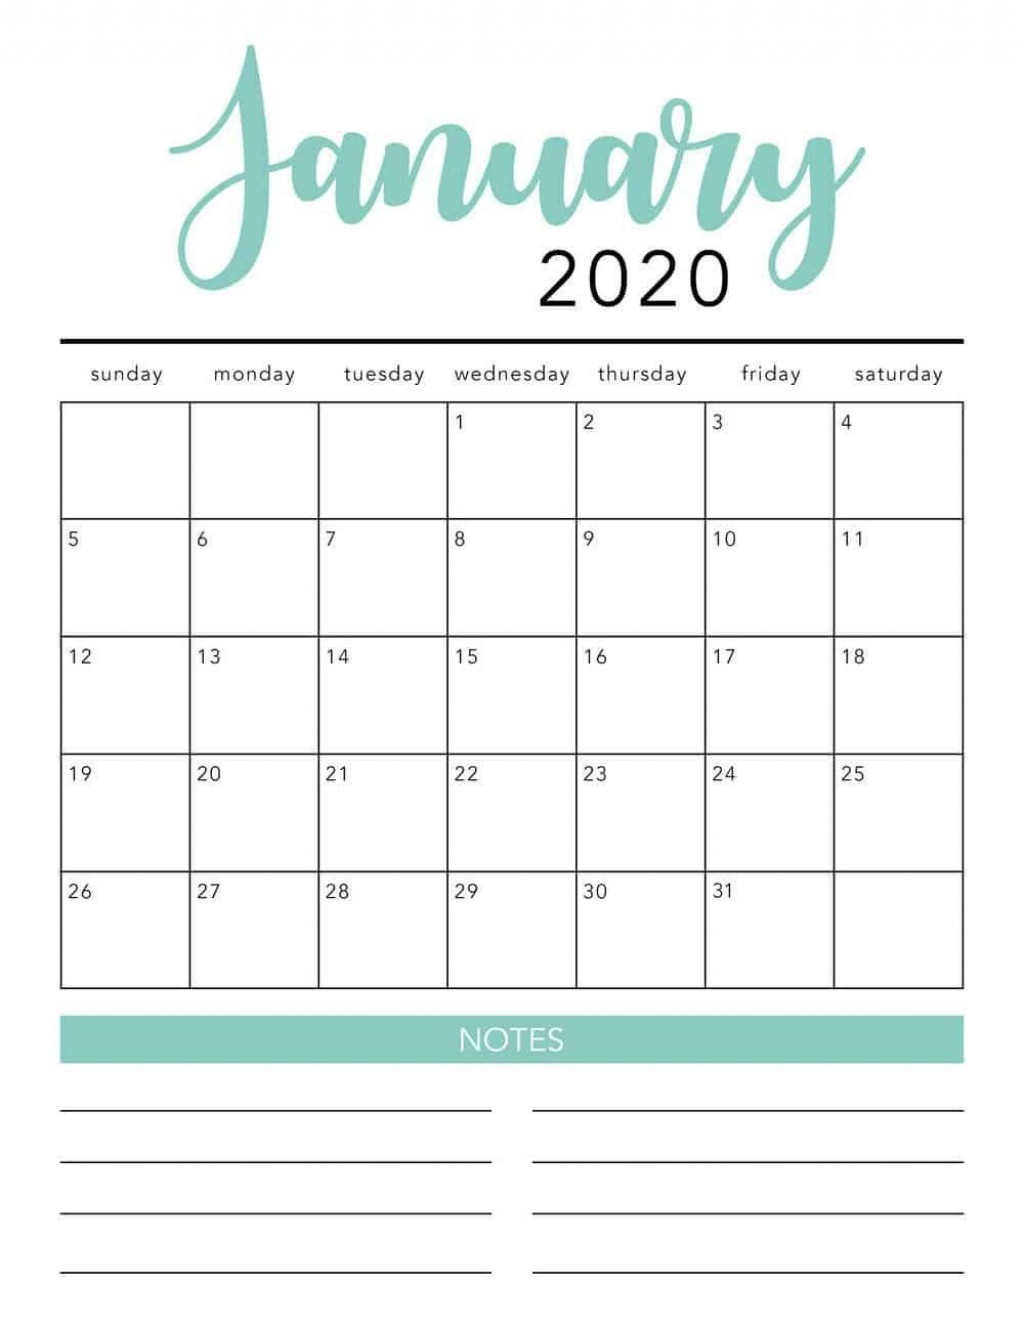 001 Simple 2020 Blank Calendar Template Image  Printable Monthly Word Downloadable With HolidayLarge